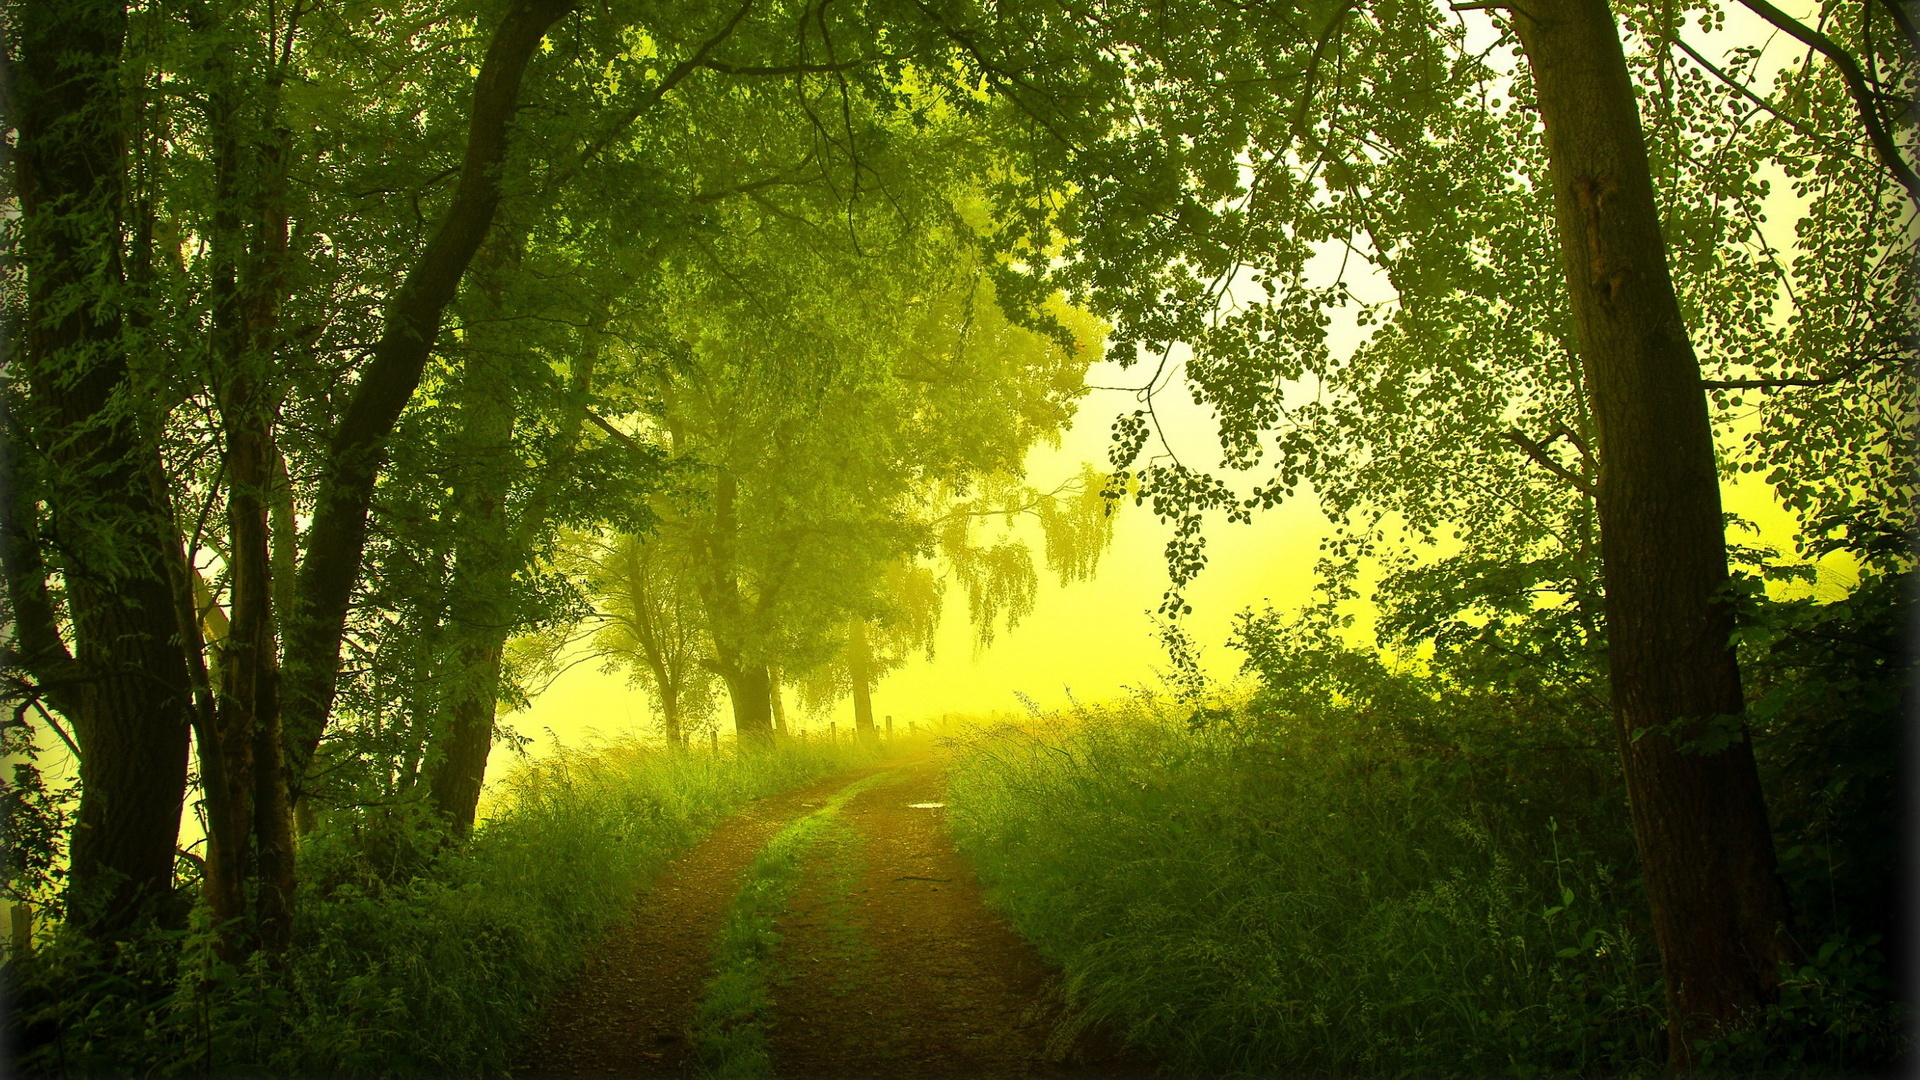 Earth - Forest  - Landscape - Path - Pathway - Road - Fog - Mist - Tree Wallpaper